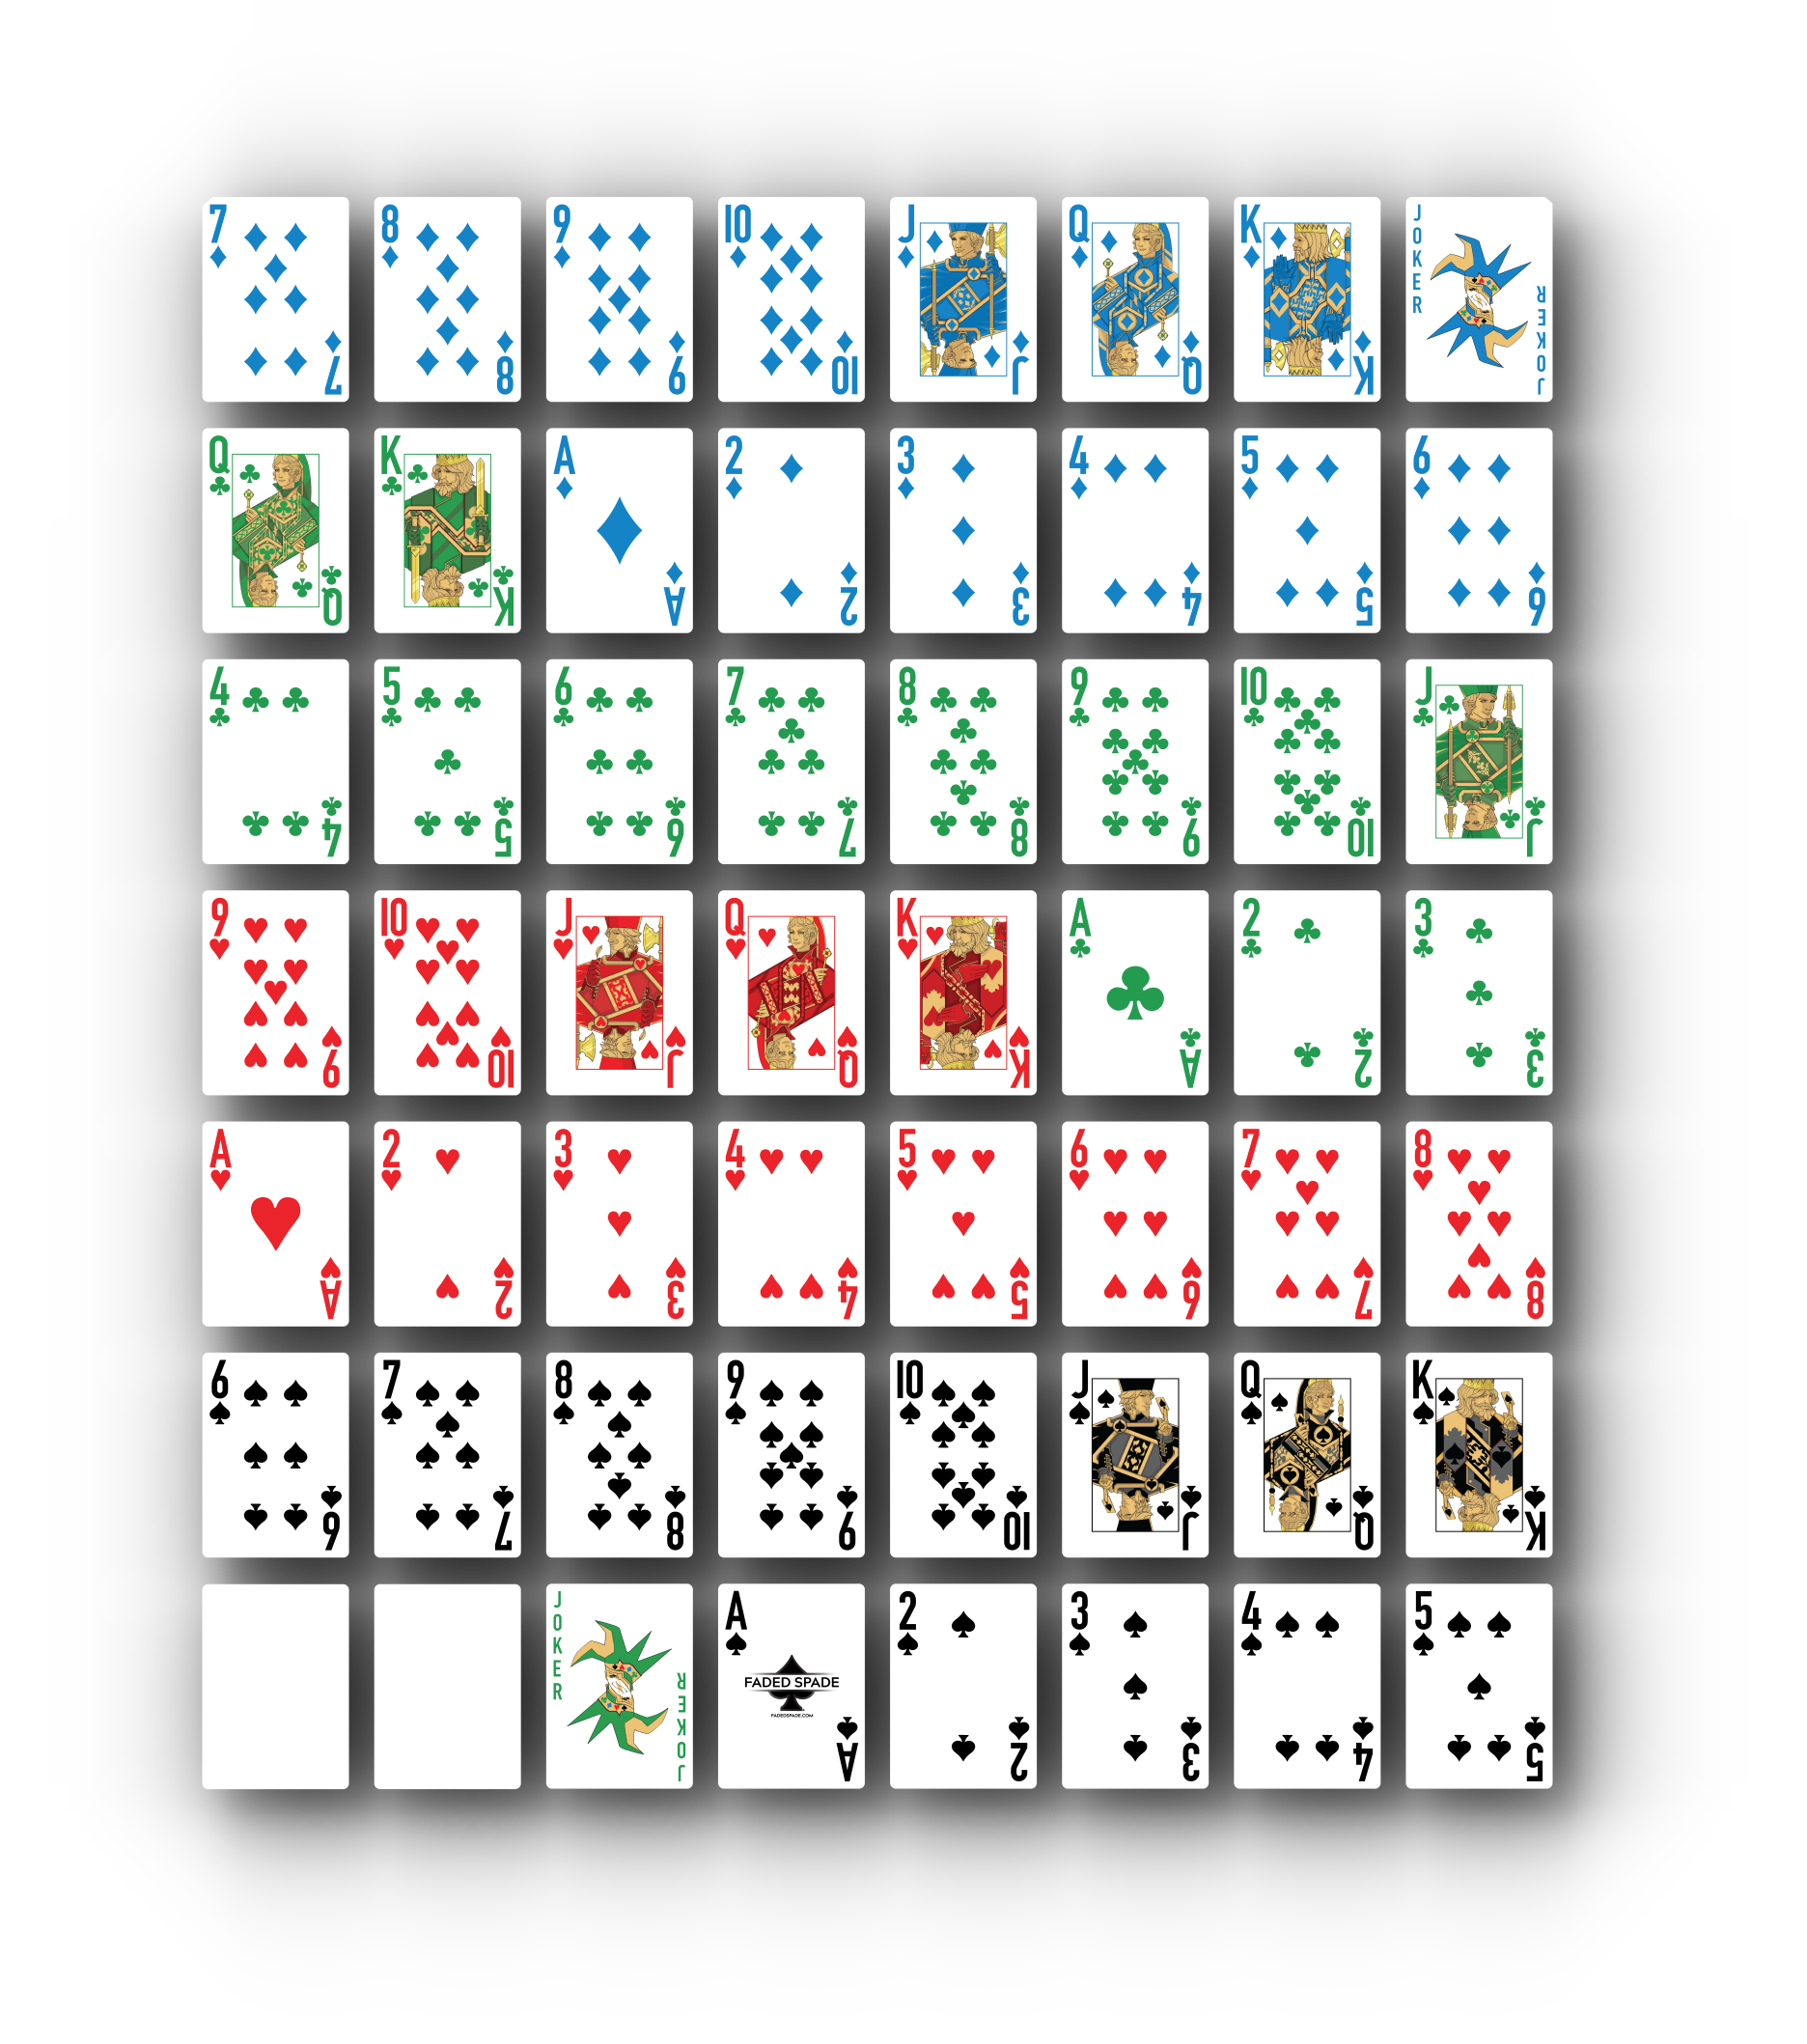 allcards-4 Color.png